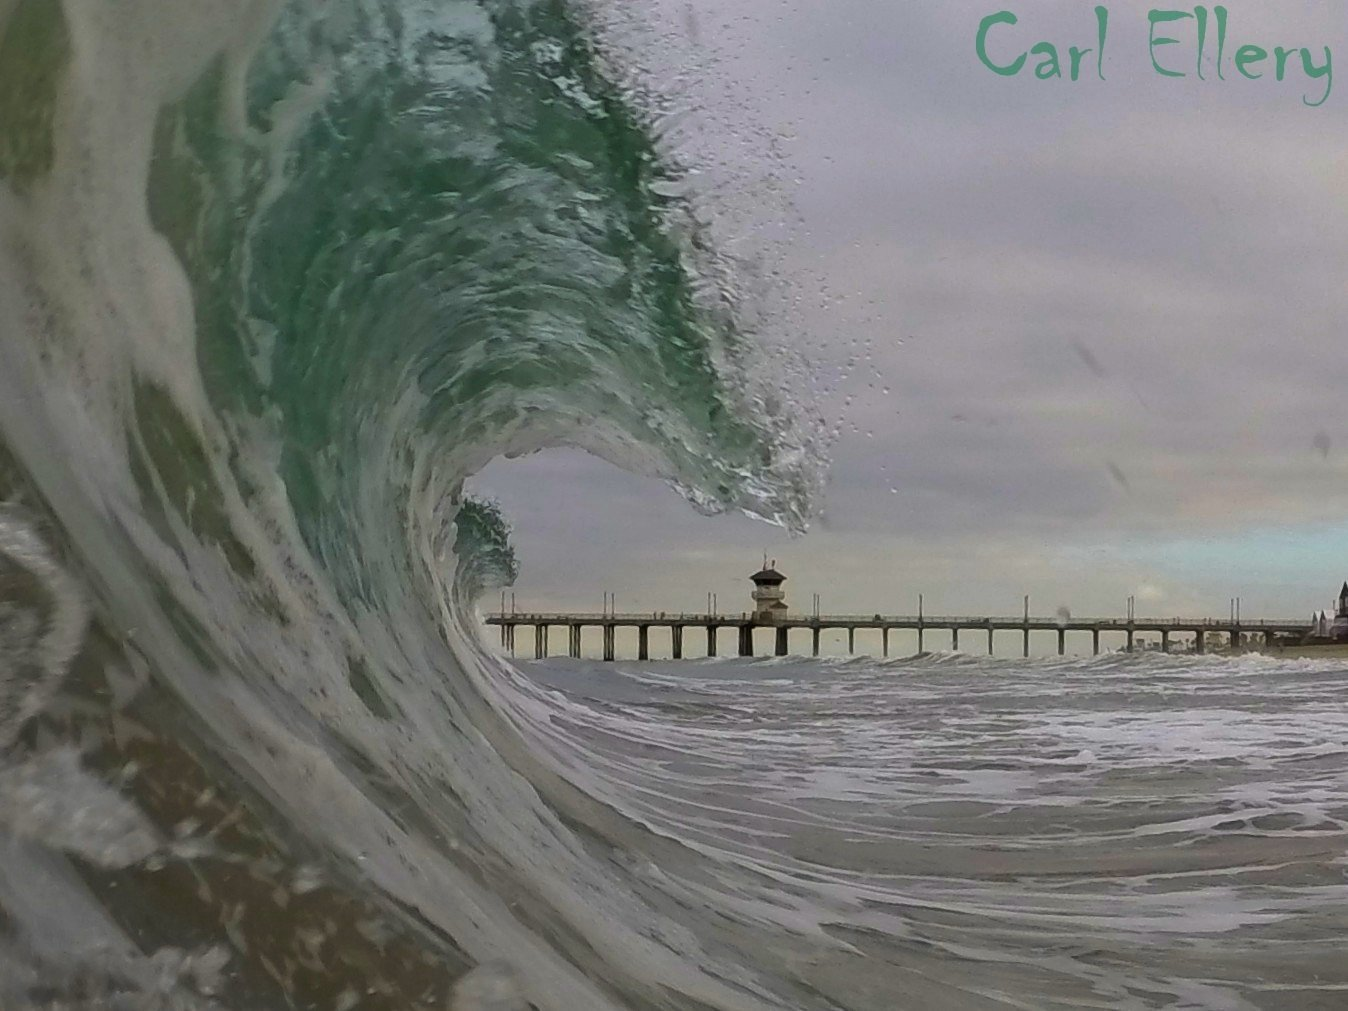 Carl.E's photo of Huntington Pier